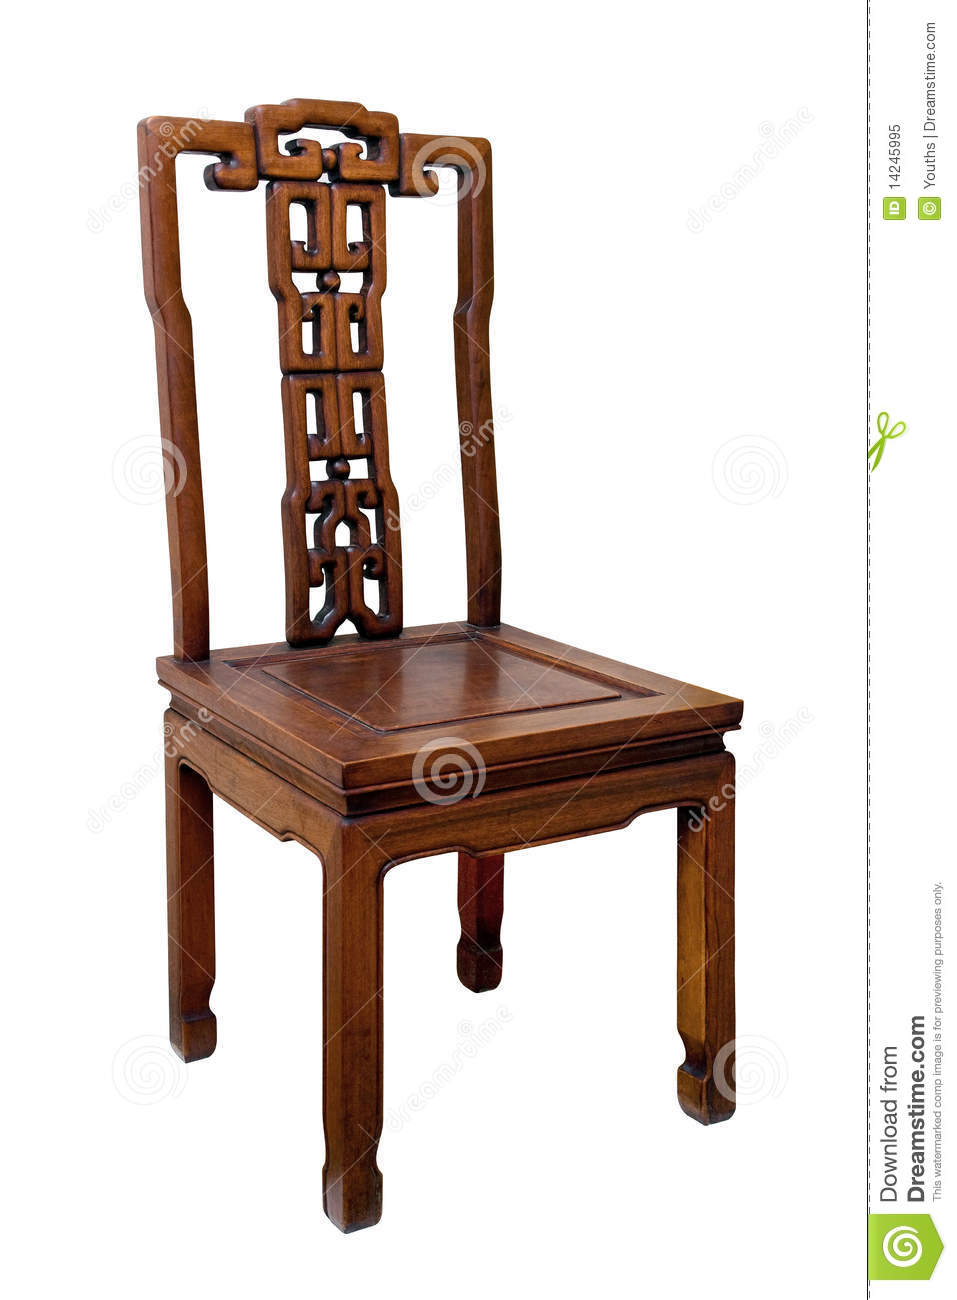 Chinese Antique Chair Isolated On White Background Stock